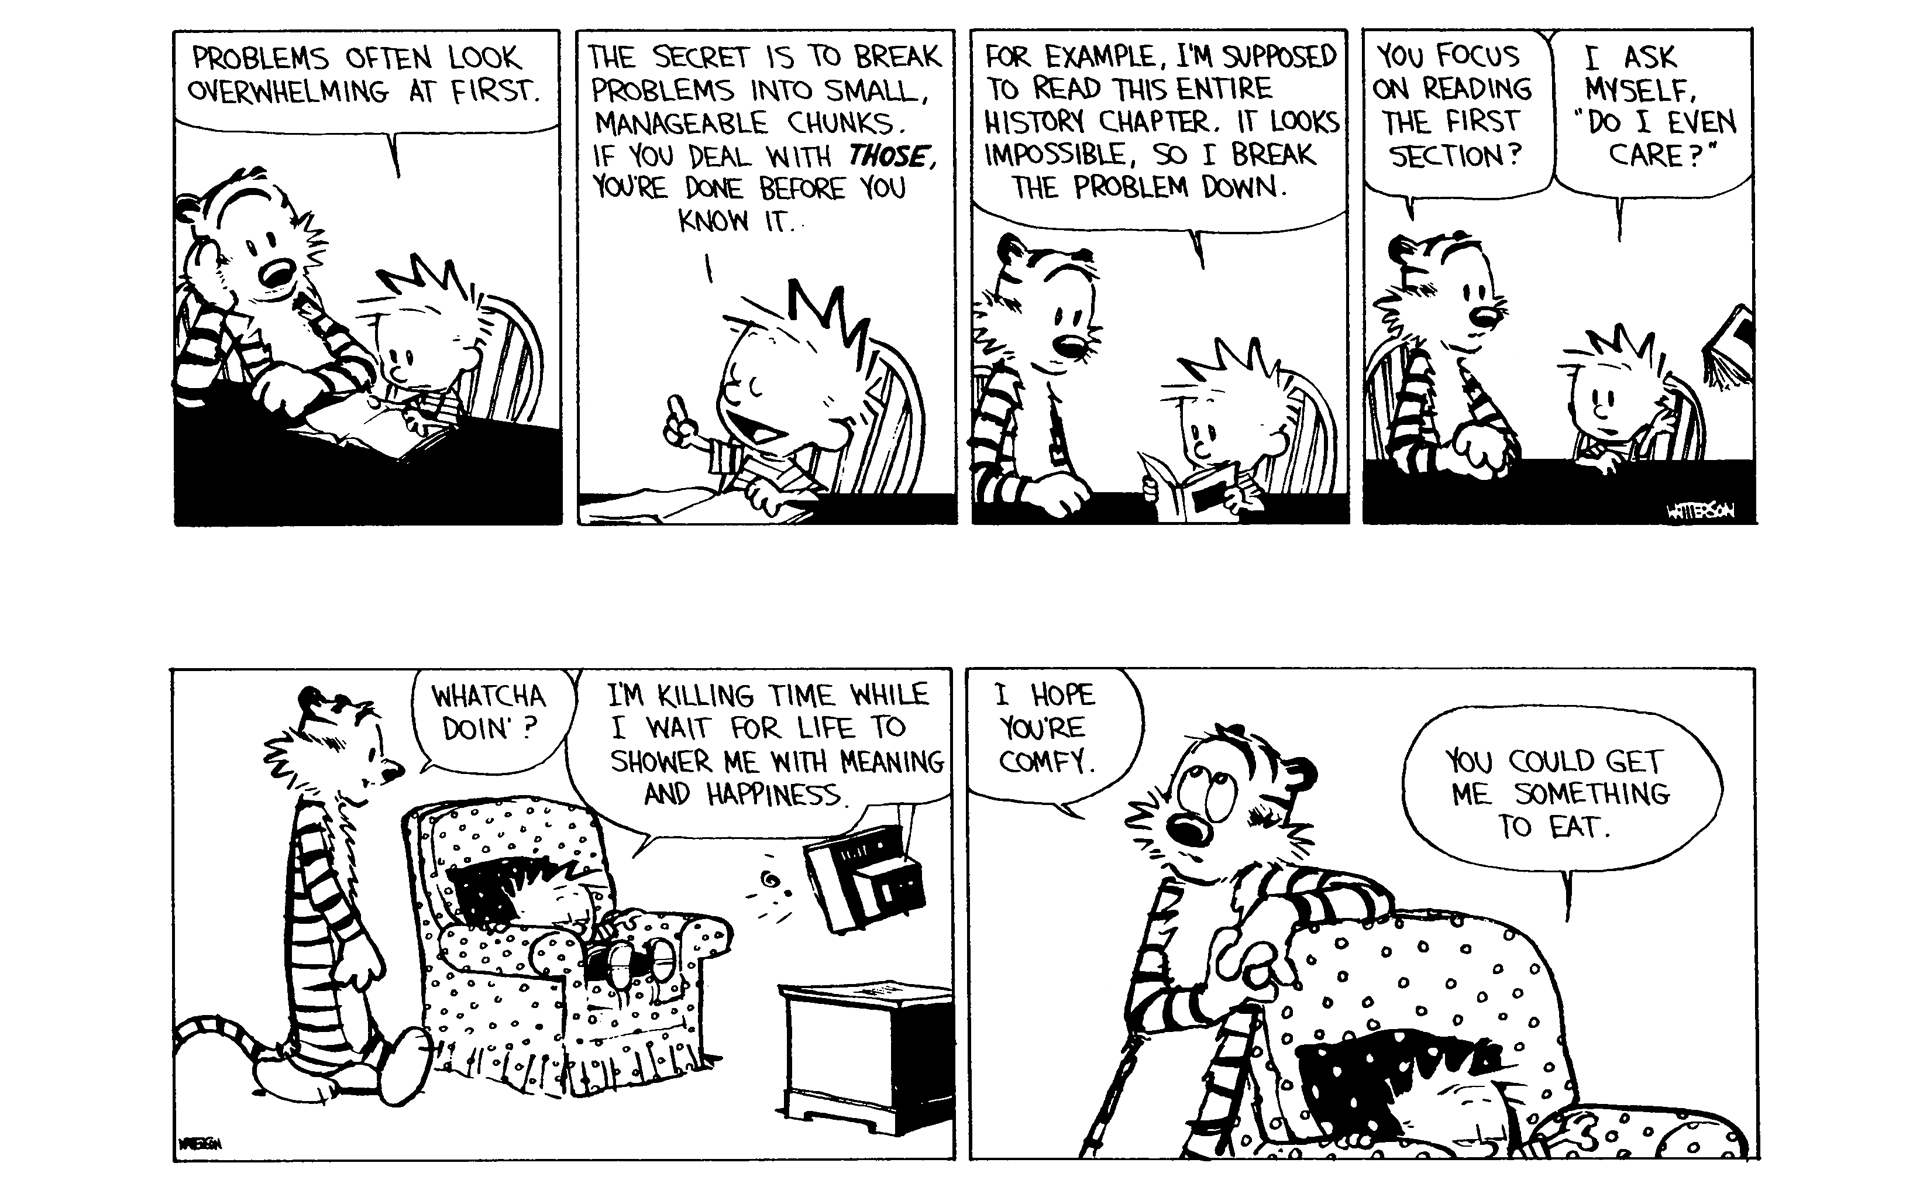 Calvin and Hobbes Issue 9 | Viewcomic reading comics online